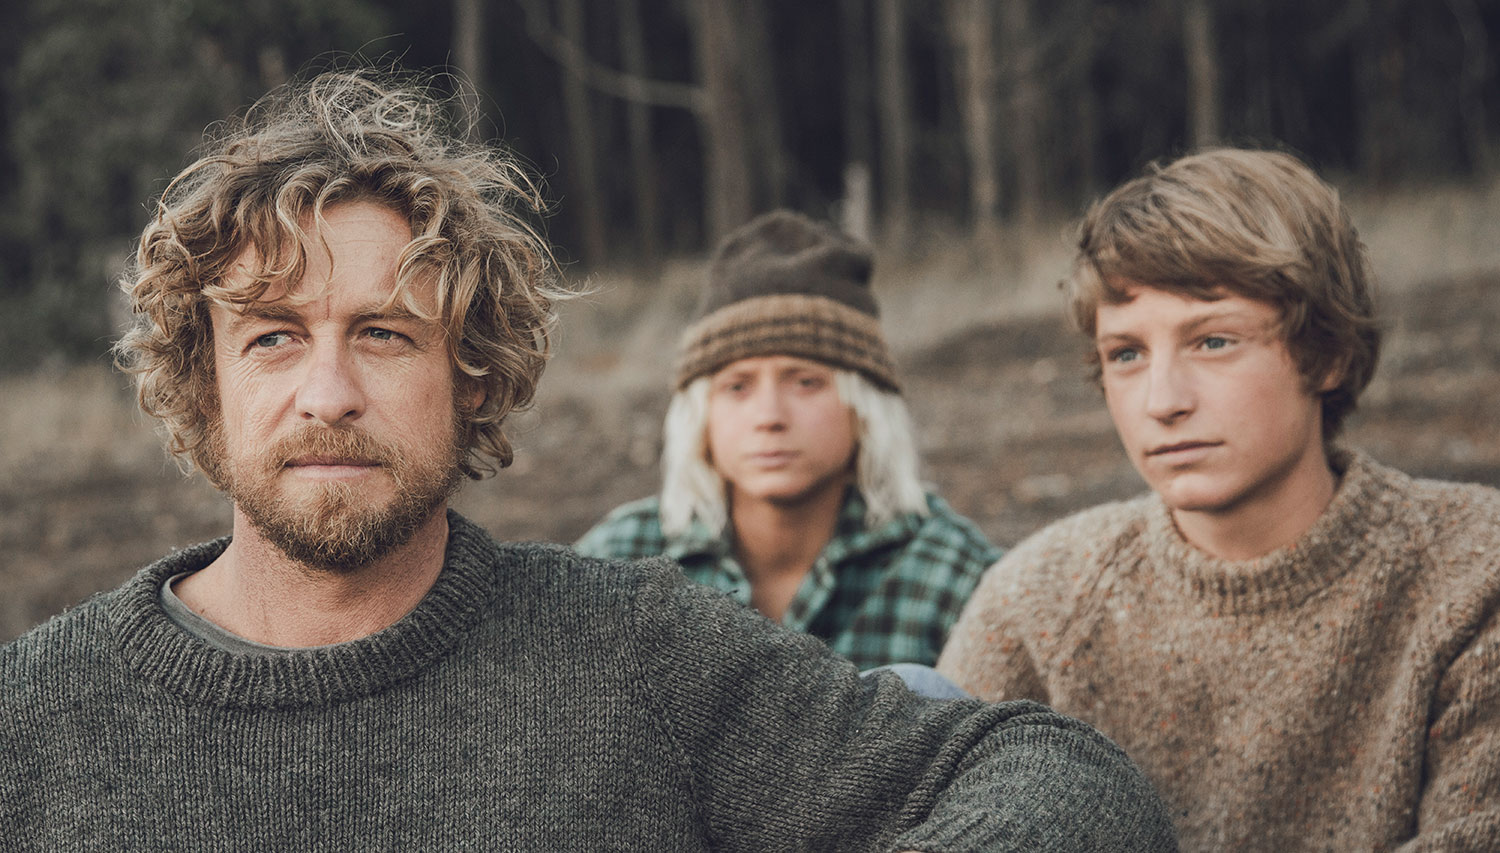 Sando (Simon Baker), Loonie (Ben Spence) and Pikelet (Samson Coulter) in a publicity photo for Breath, the movie based on Tim's Winton's book, filmed in Denmark, Western Australia